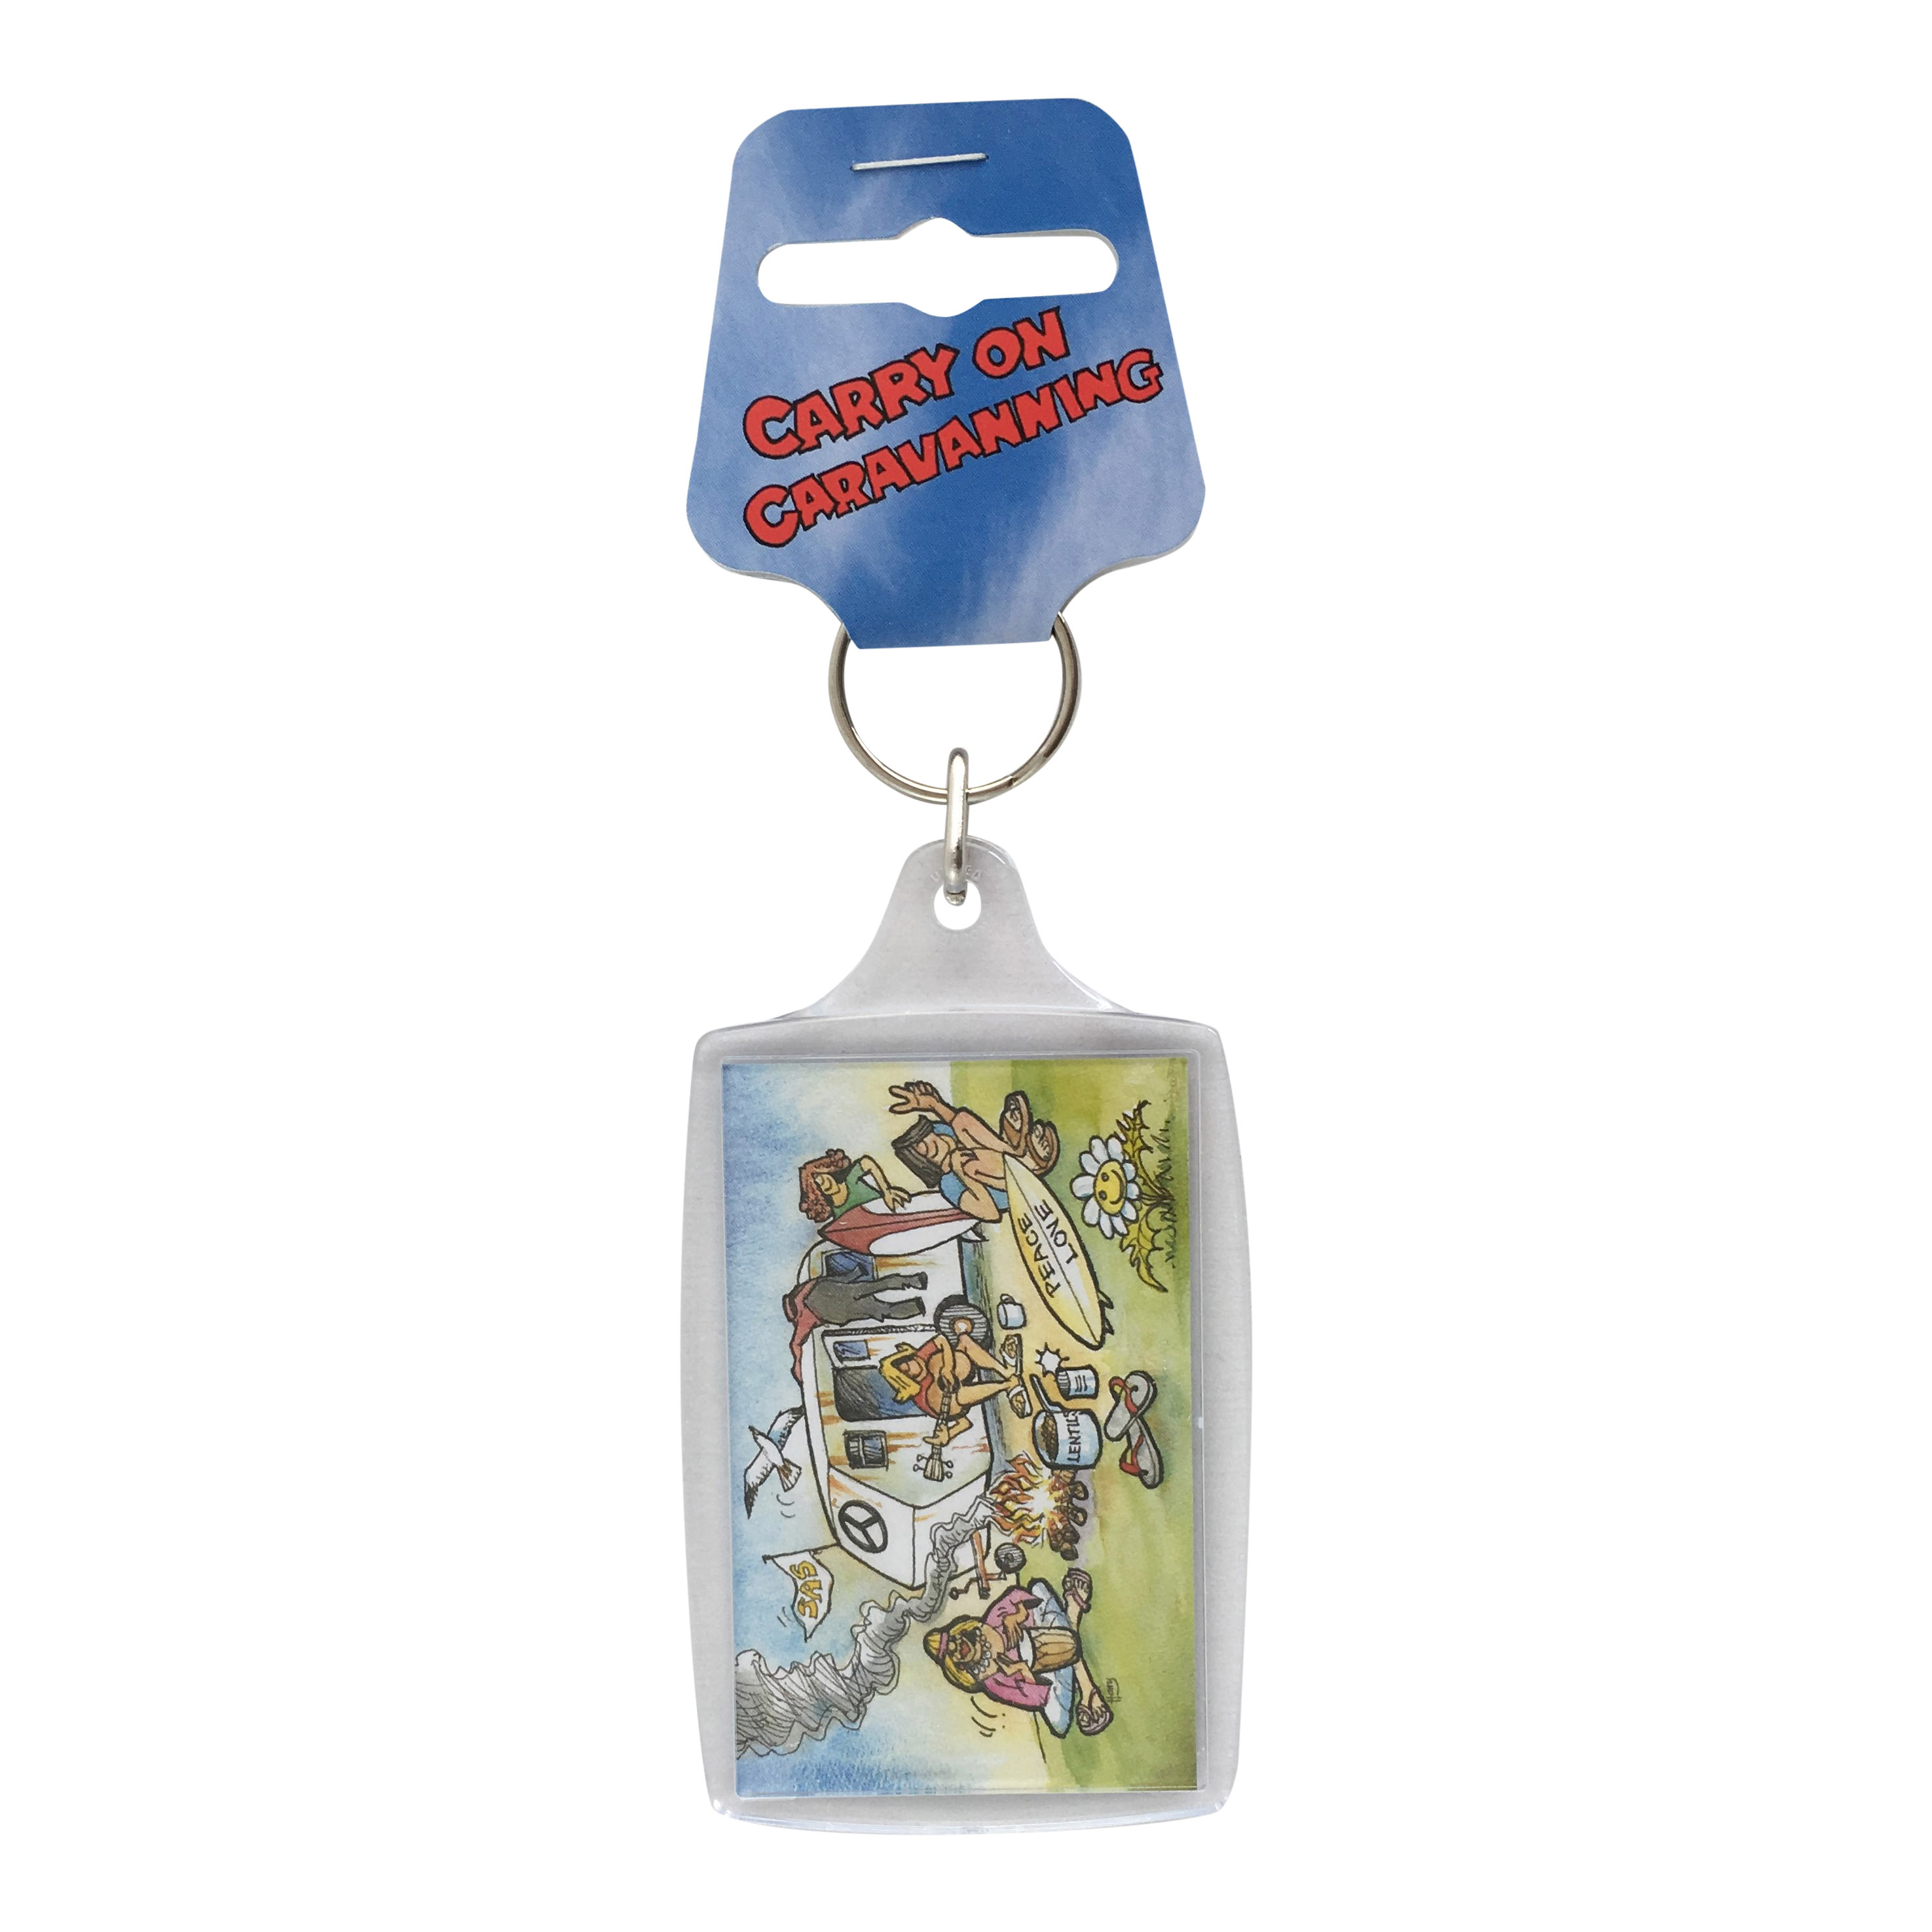 Carry on Caravanning Acrylic Keyring Surfers